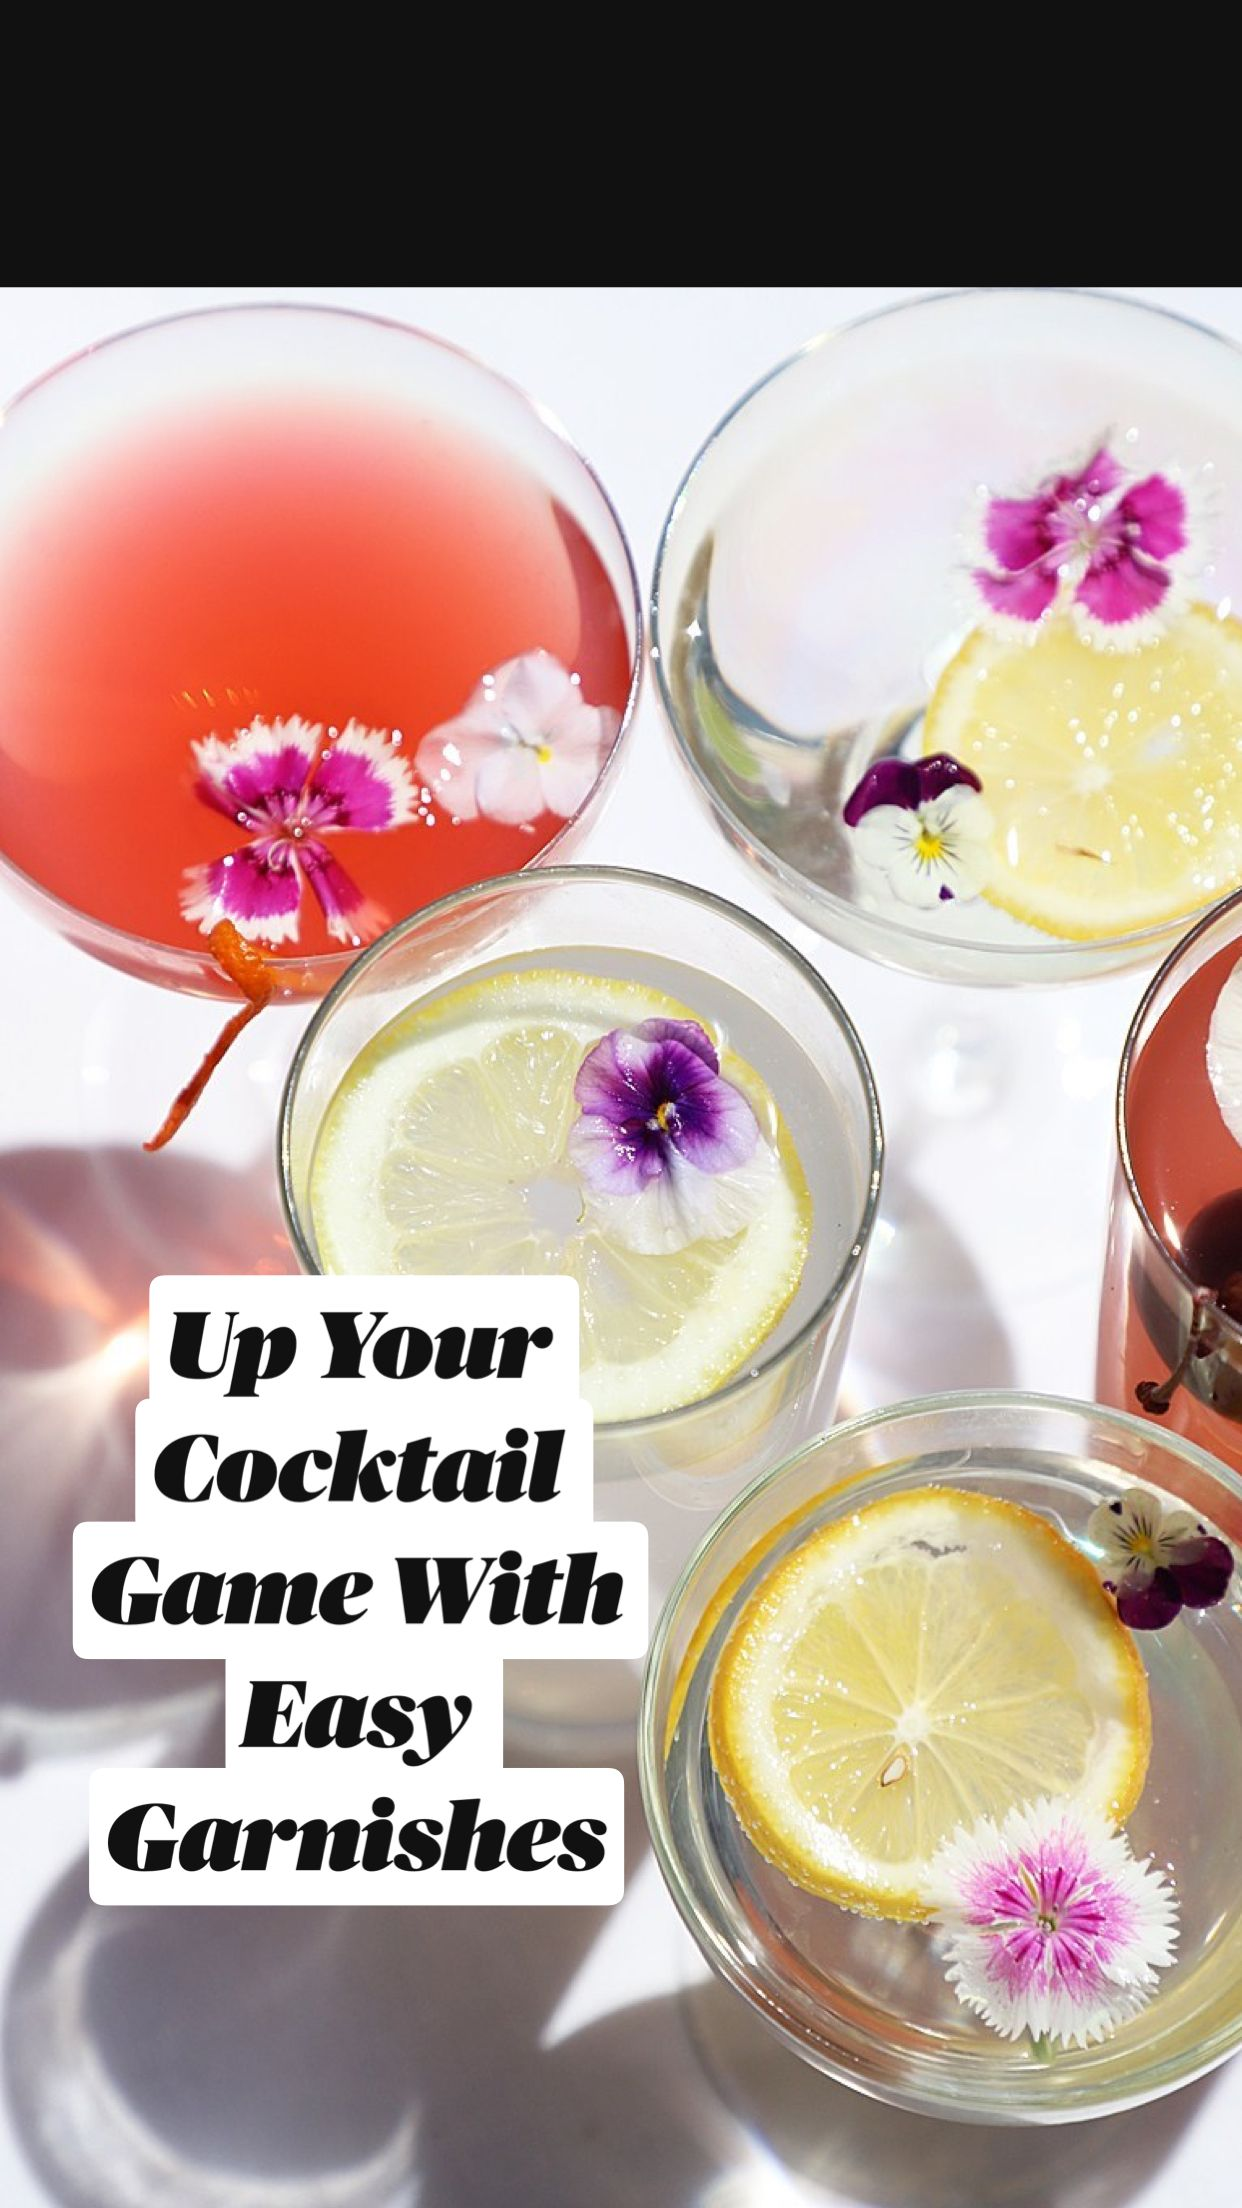 Up Your Cocktail Game With Easy Garnishes